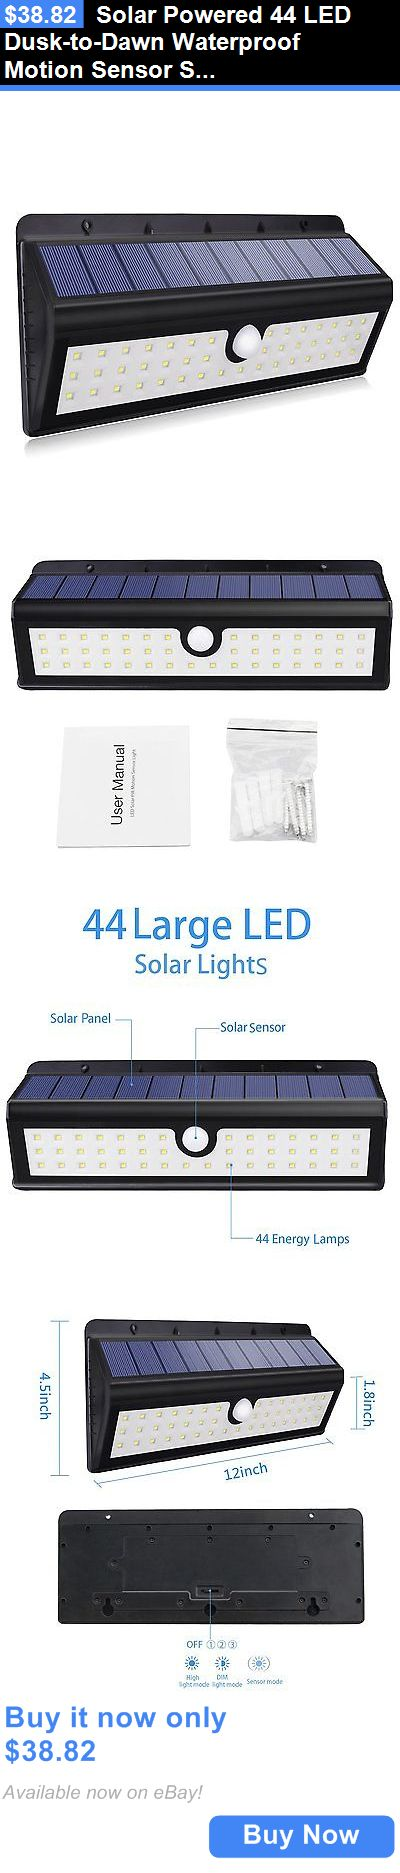 farm and garden: Solar Powered 44 Led Dusk-To-Dawn Waterproof Motion Sensor Security Flood Light BUY IT NOW ONLY: $38.82